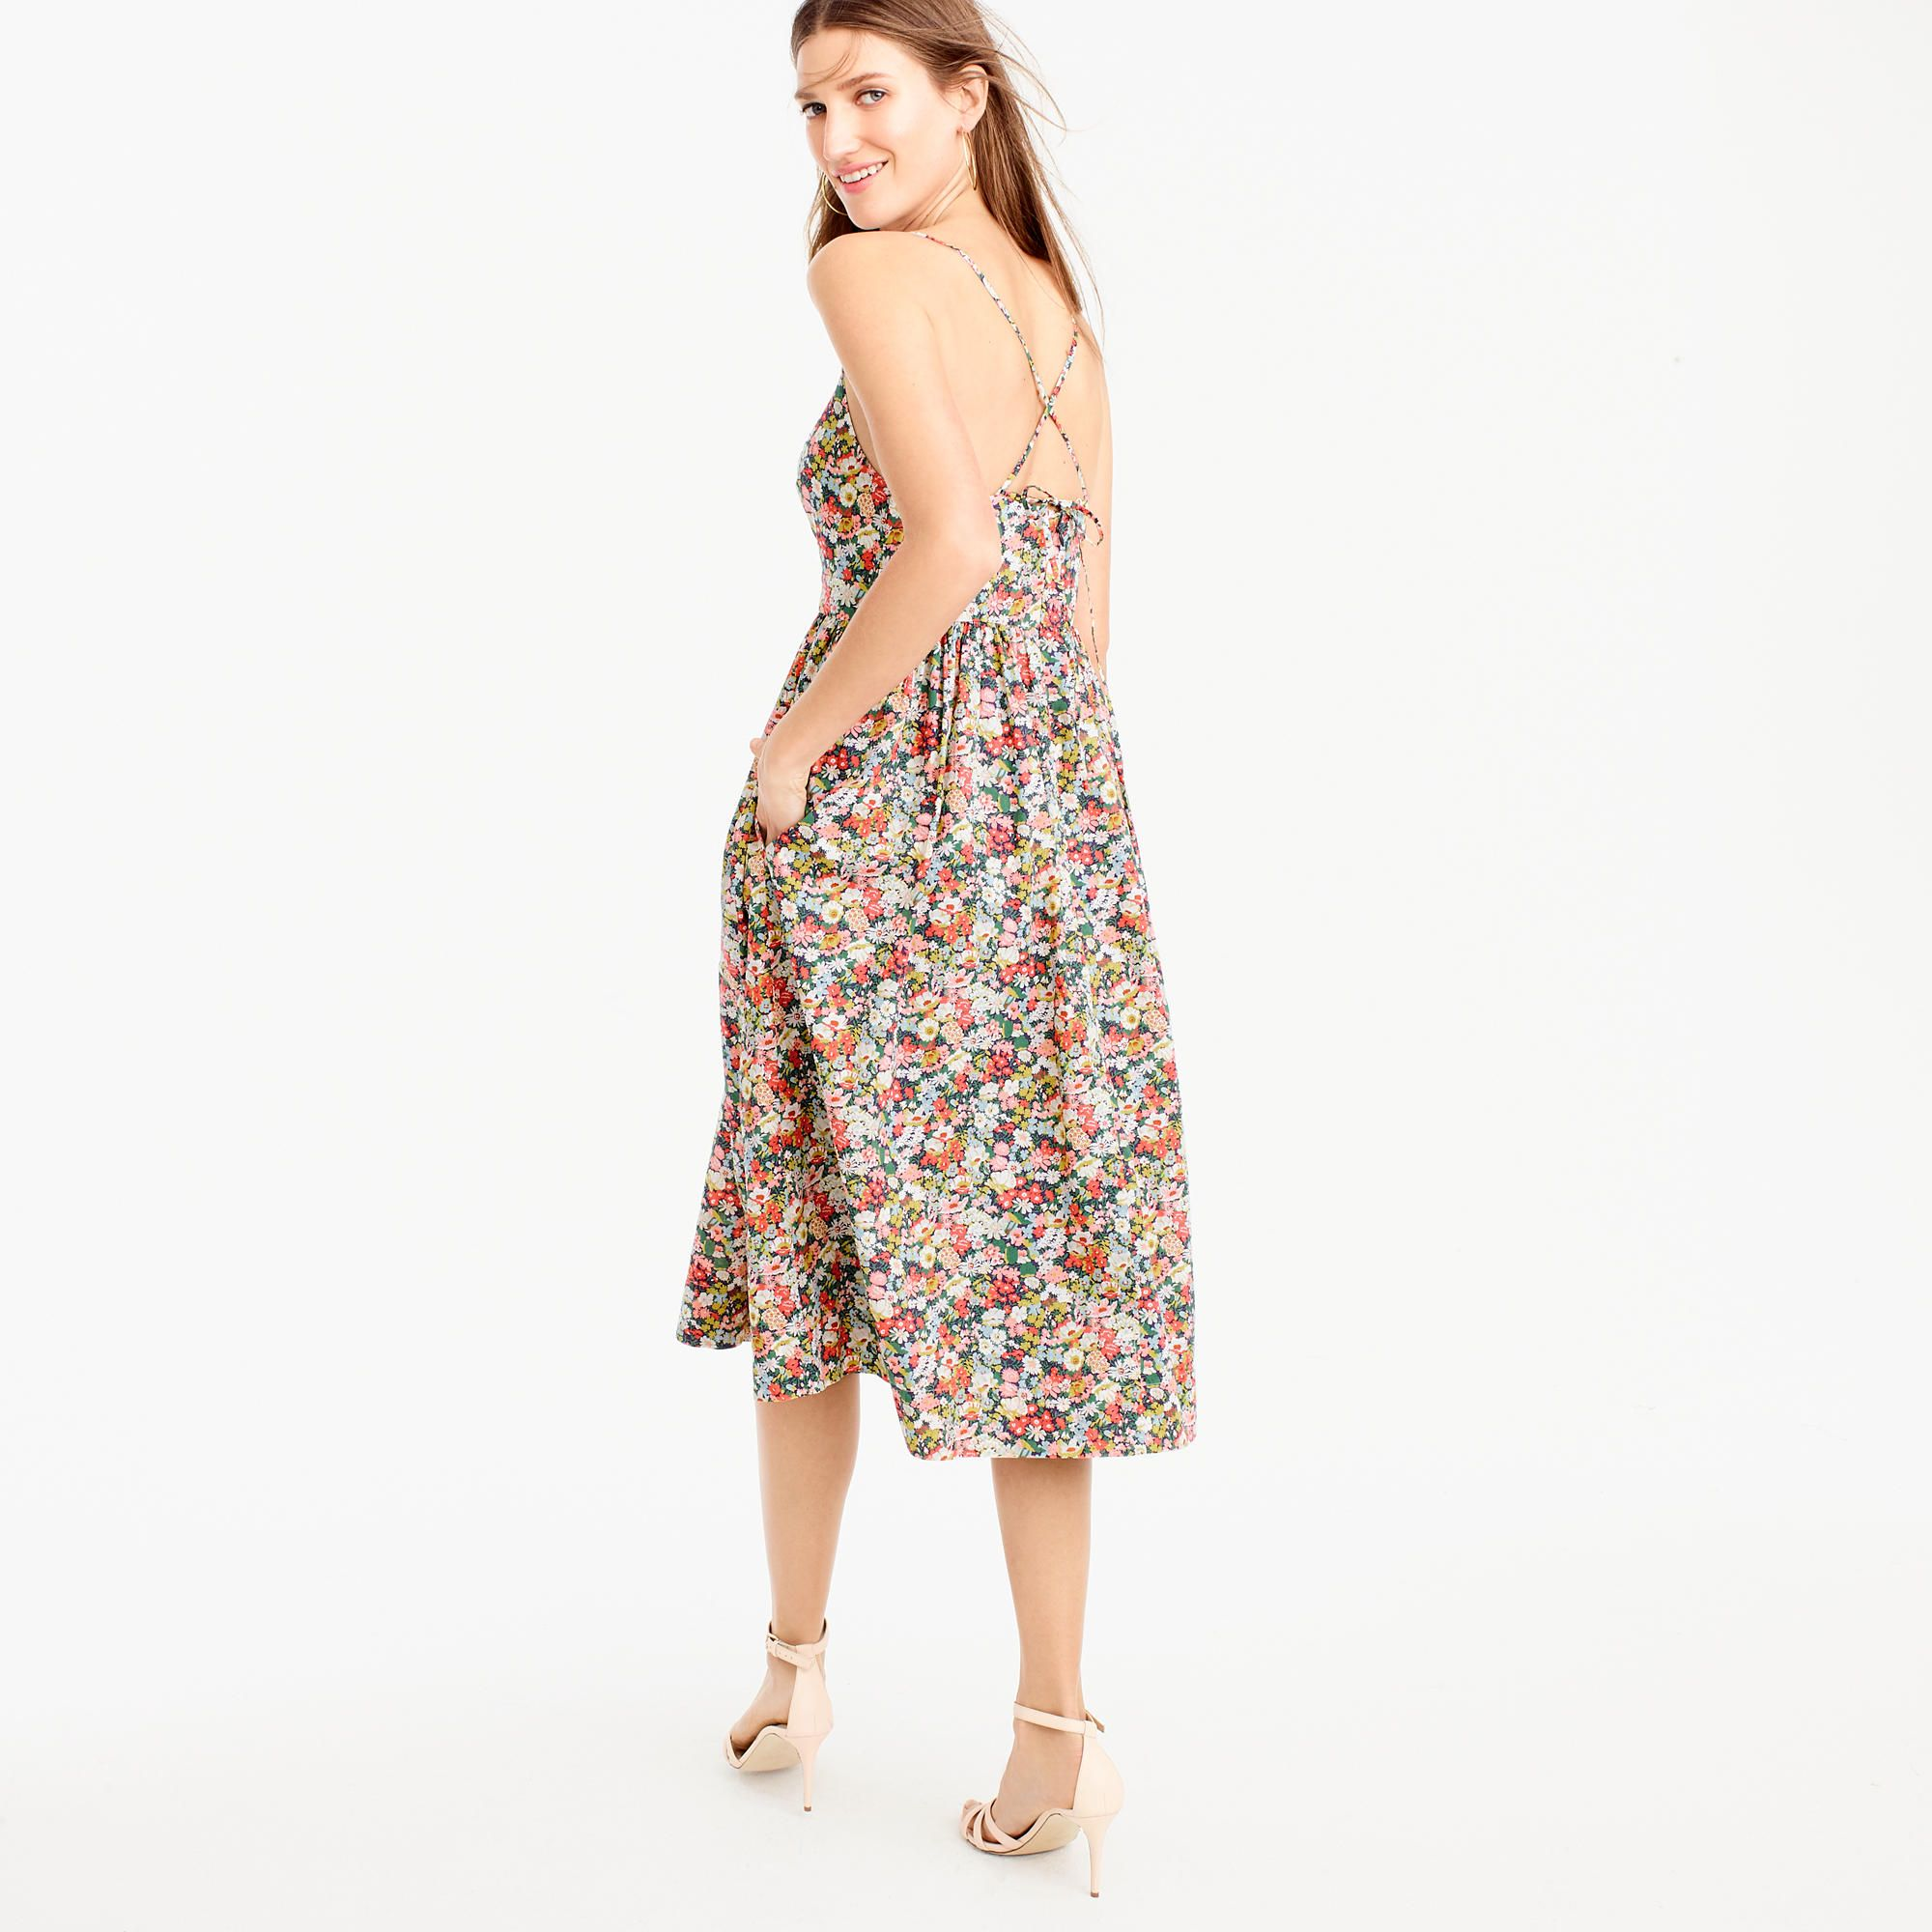 dbd19c2a95 Lace-up back dress in Liberty® Thorpe floral